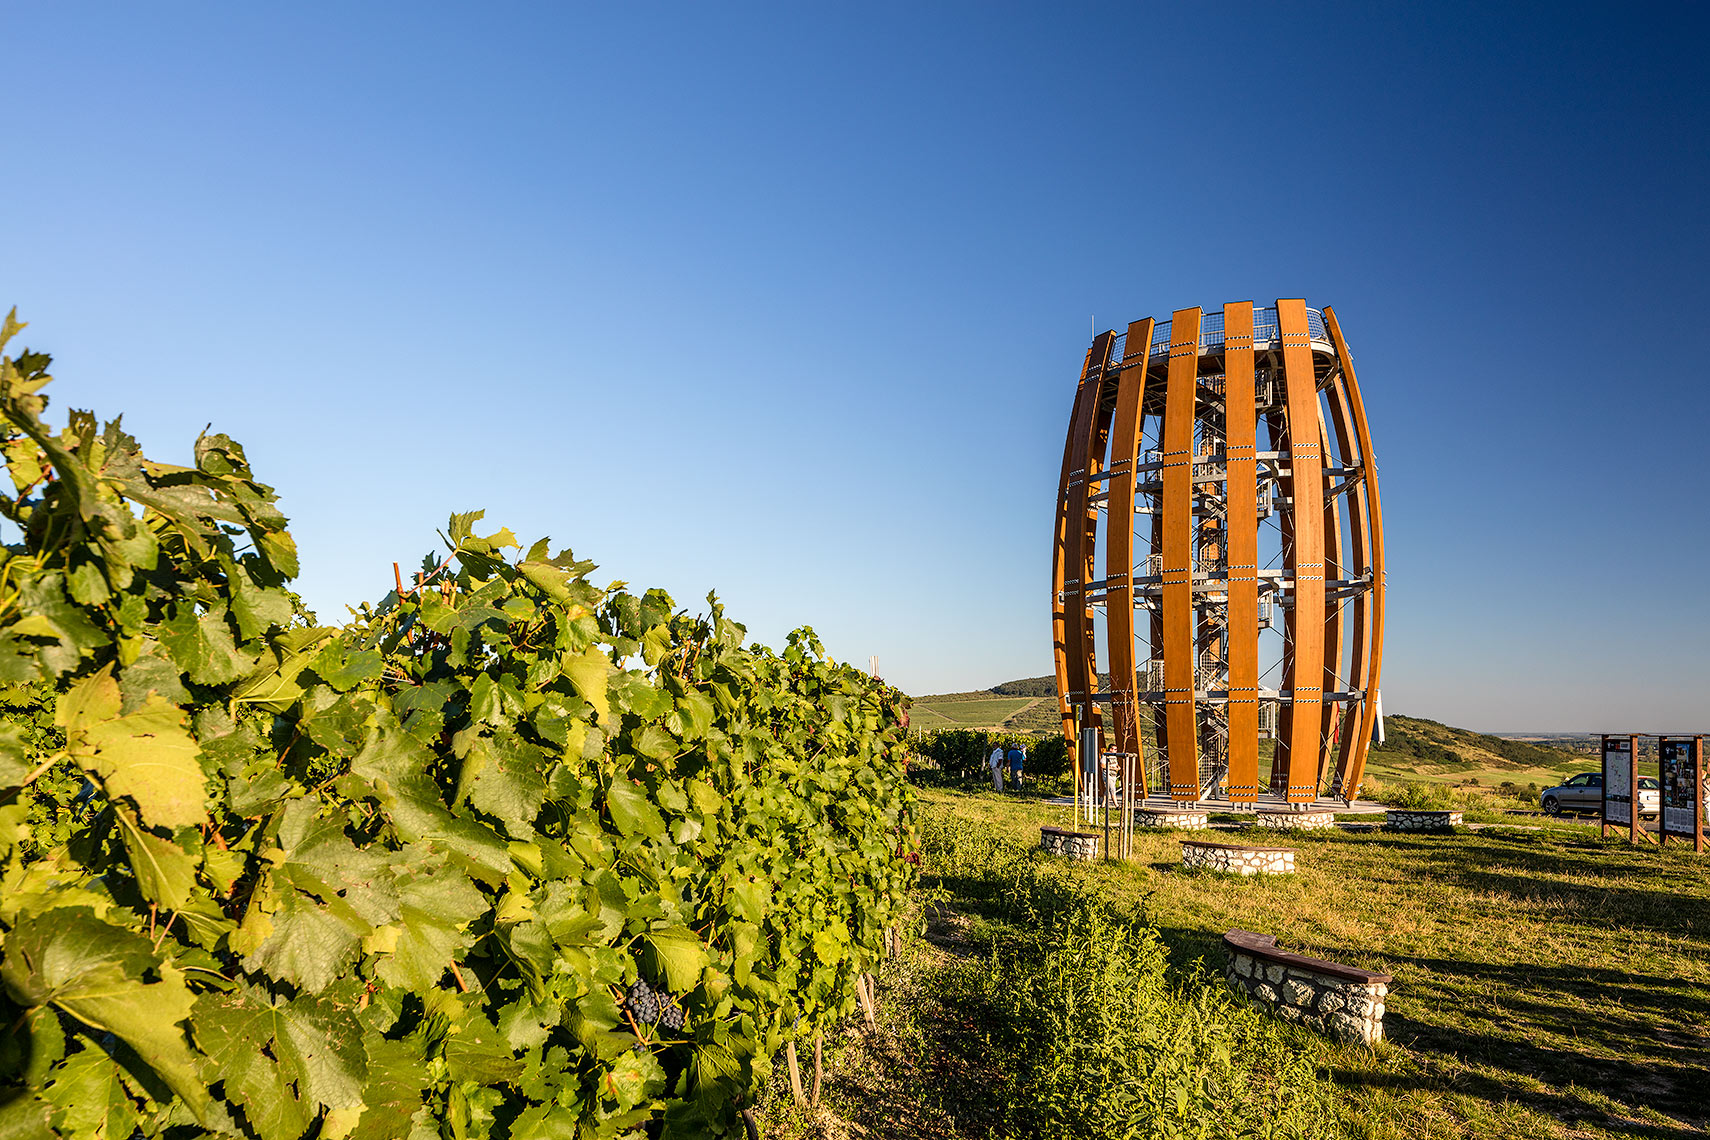 Tokaj tower among the wines, Peter A. Sellar Architectural Photographer